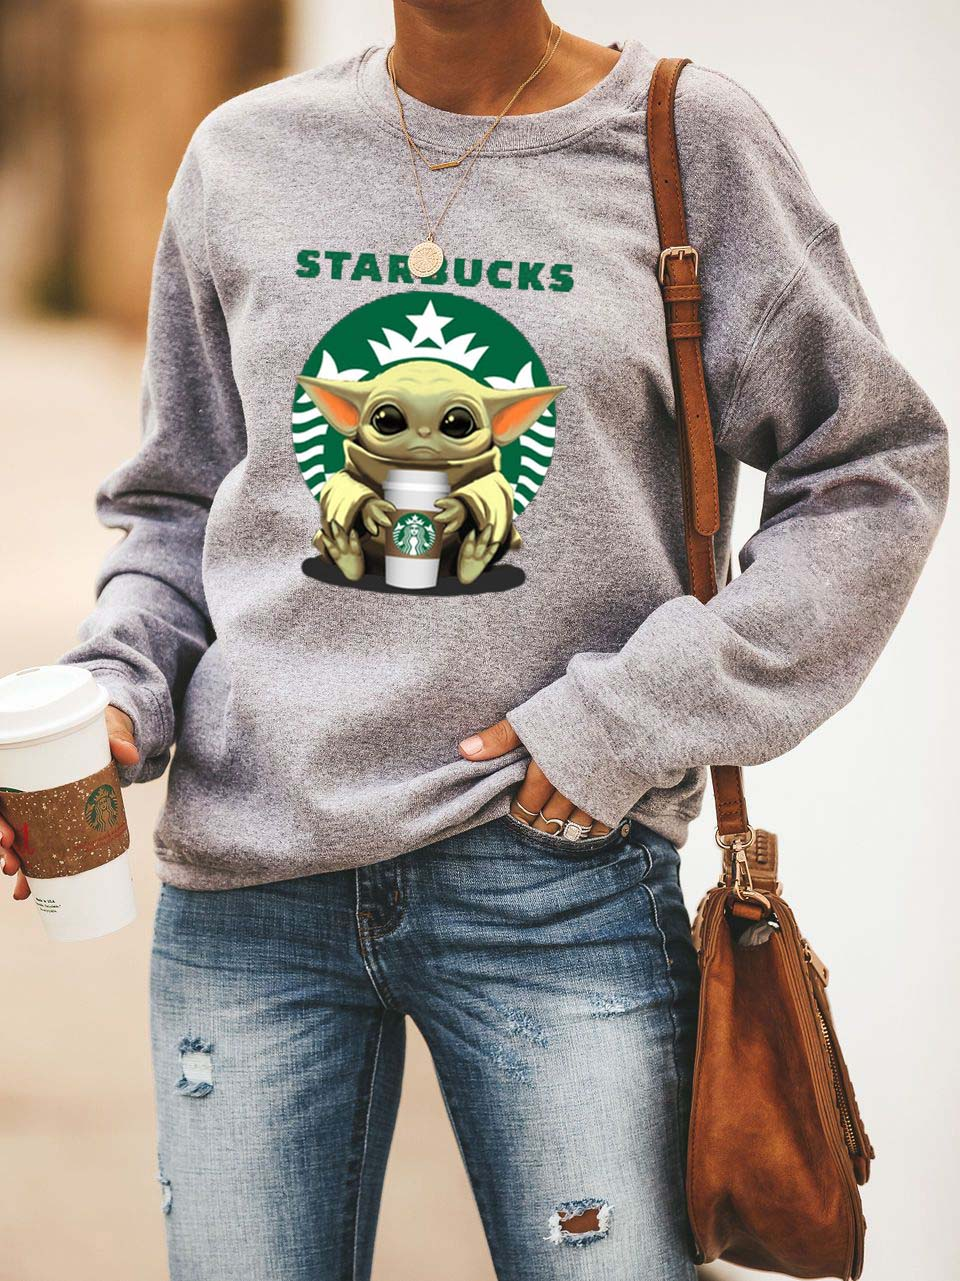 Starbucks Baby Cozy Sweatshirt